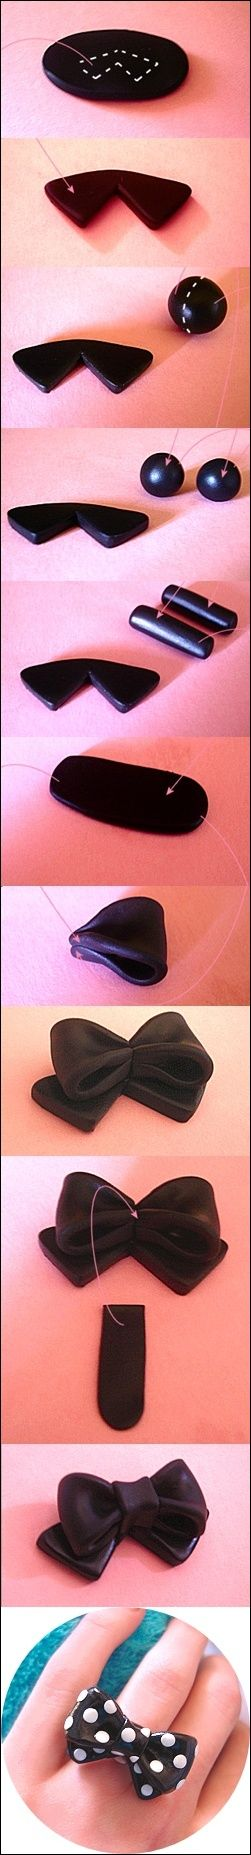 Polymer clay bow ring tutorial